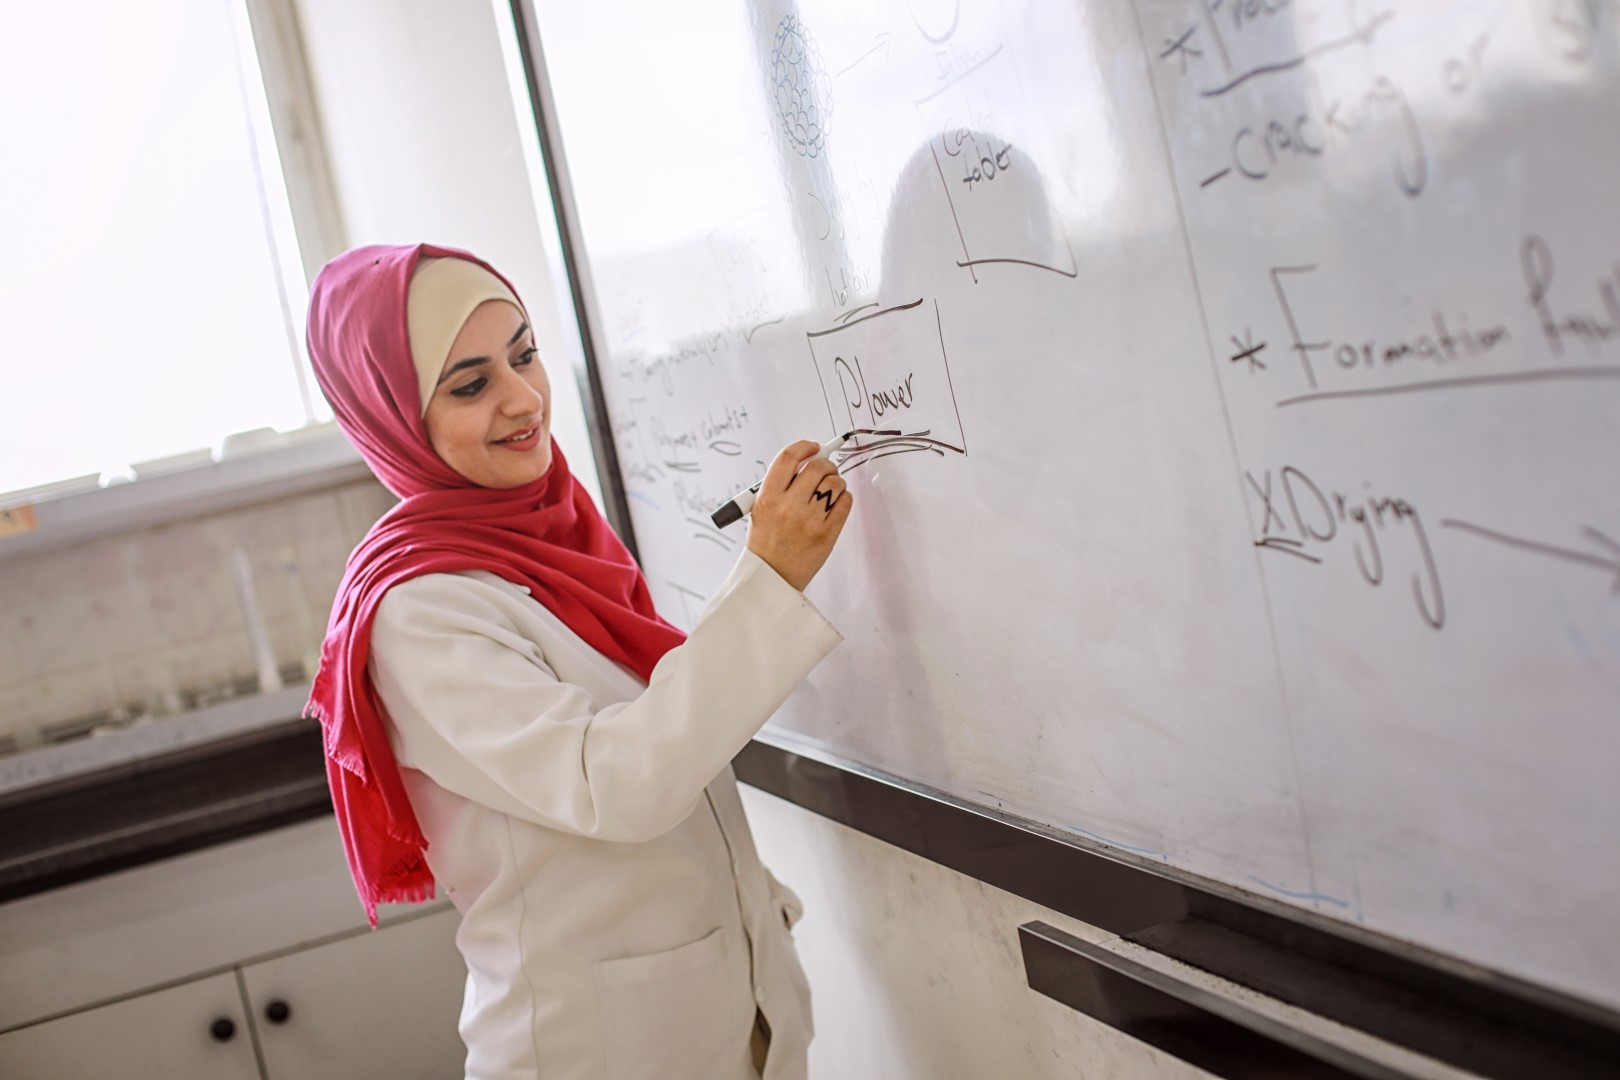 Teacher writing on white board in Gaza